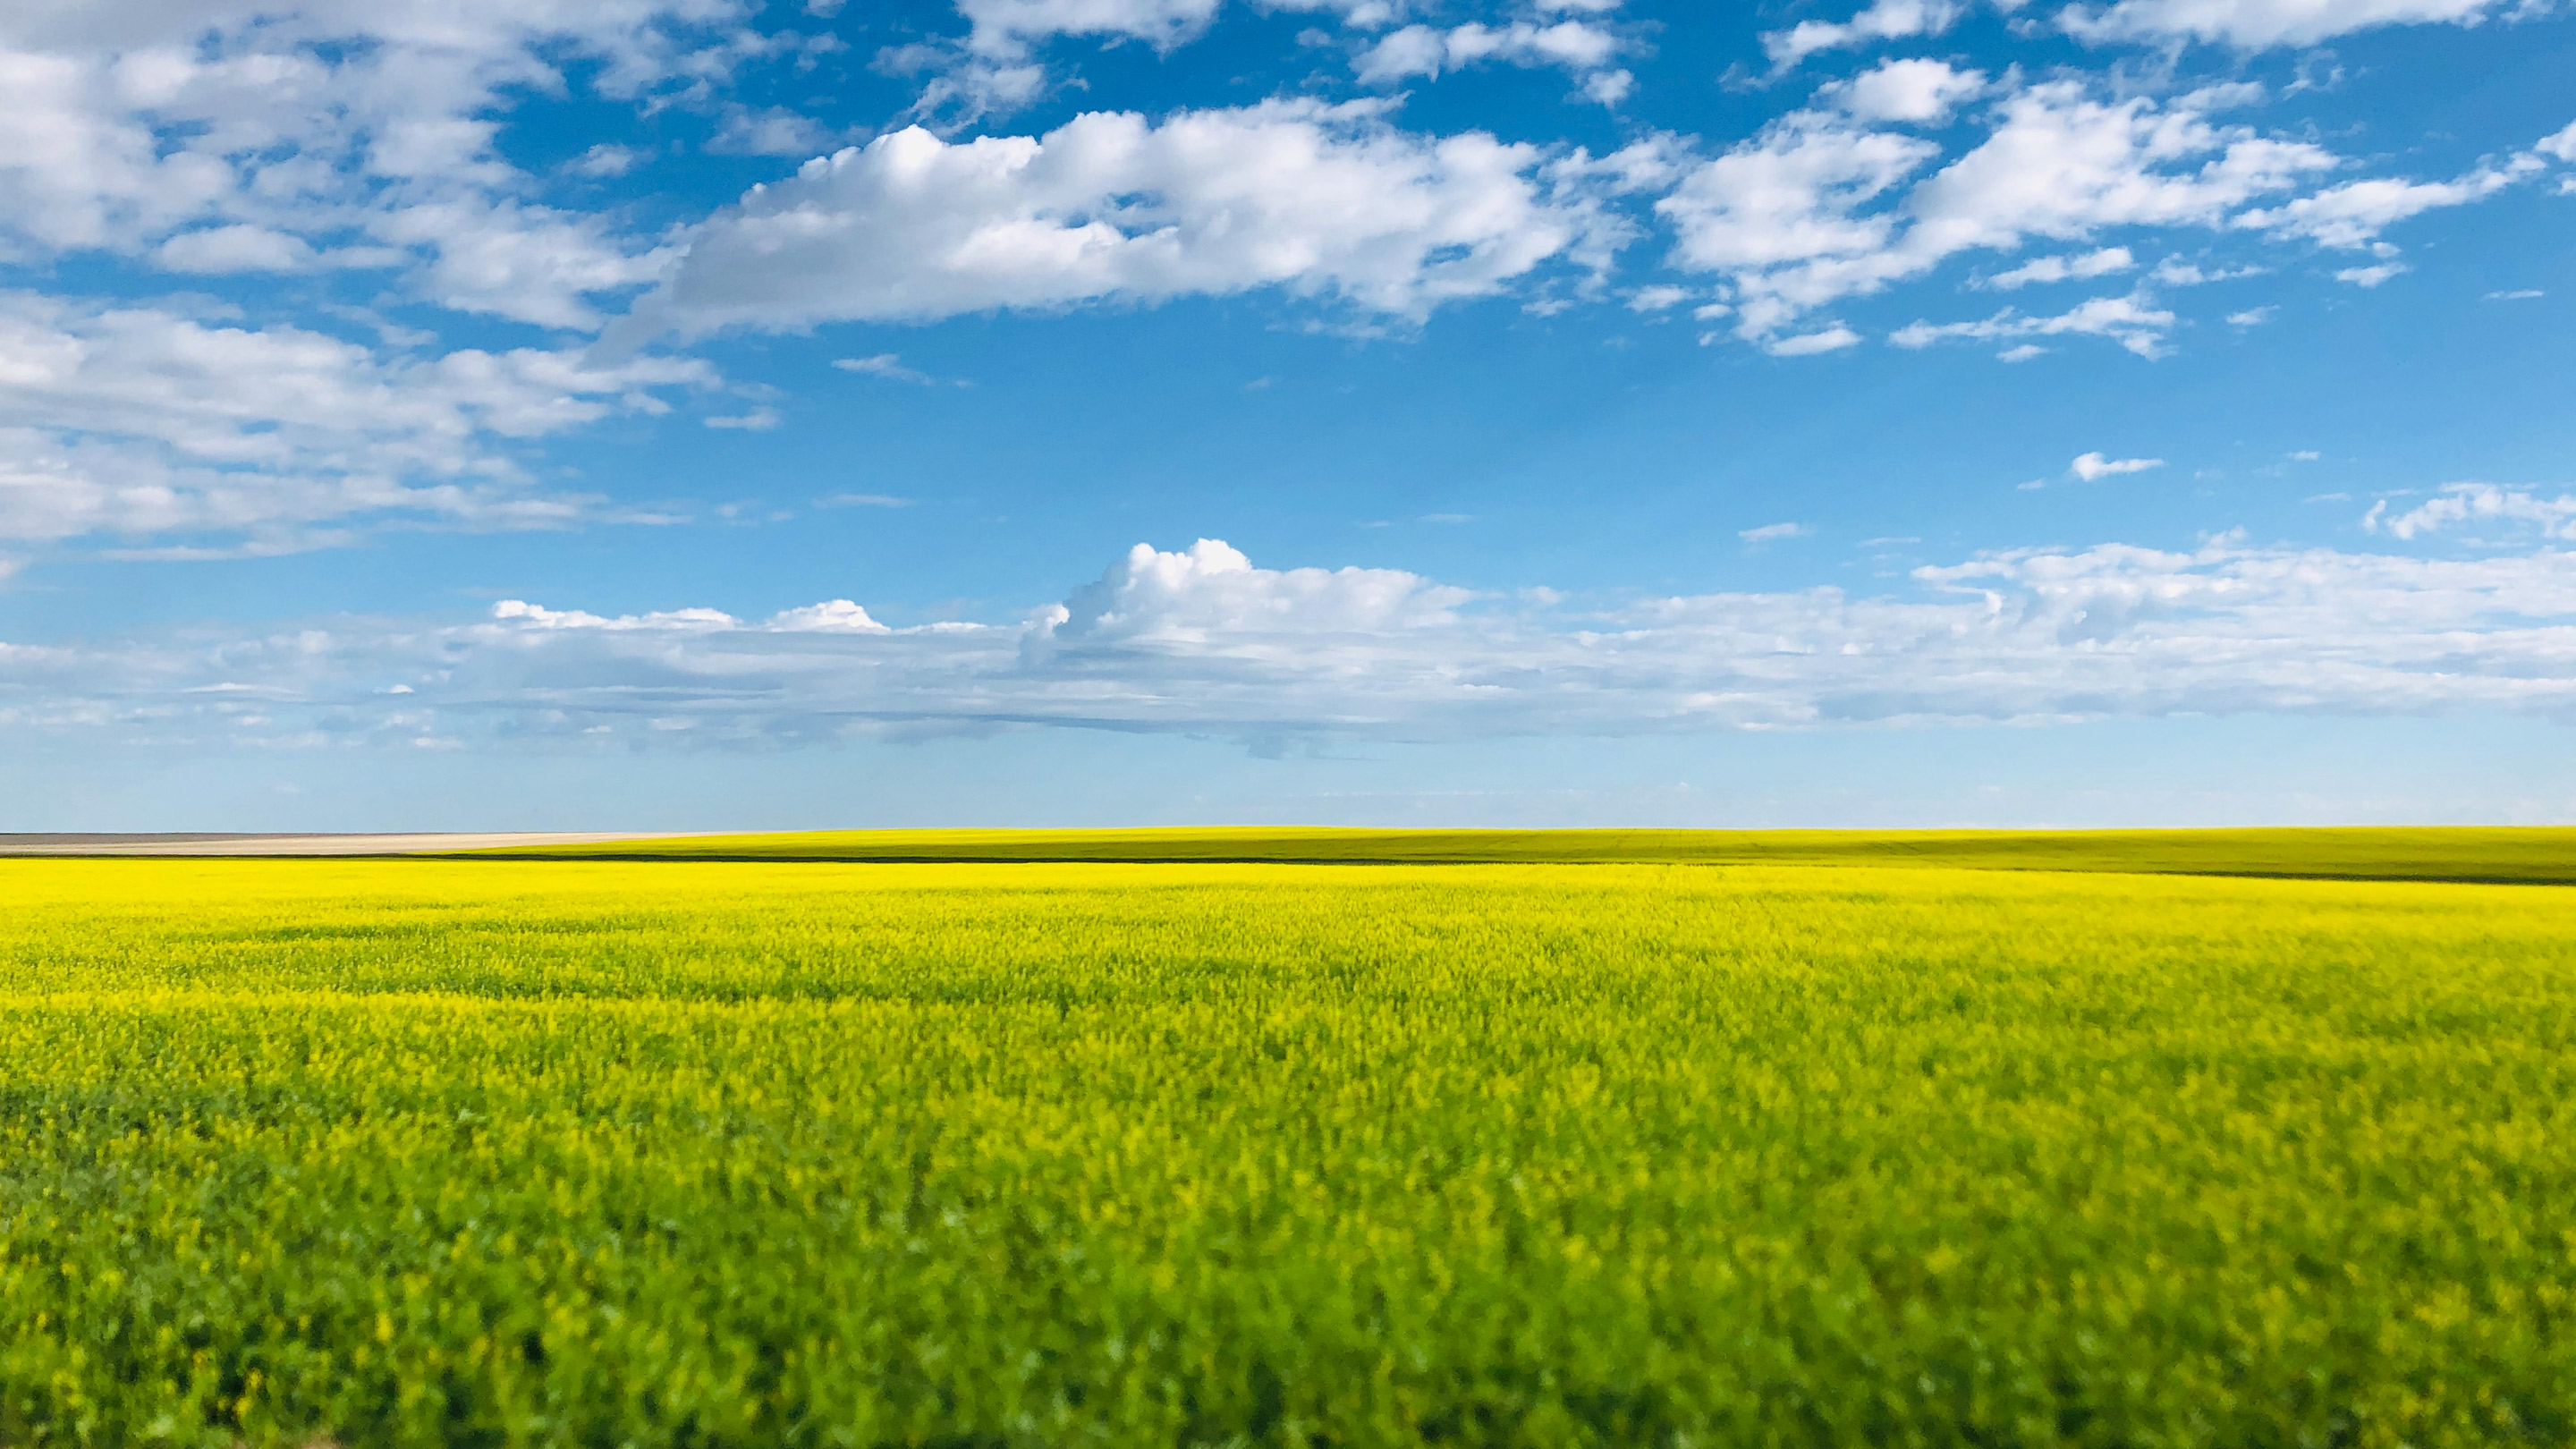 camelina, a patented fallow land crop used in production of renewable diesel with GCEHoldings